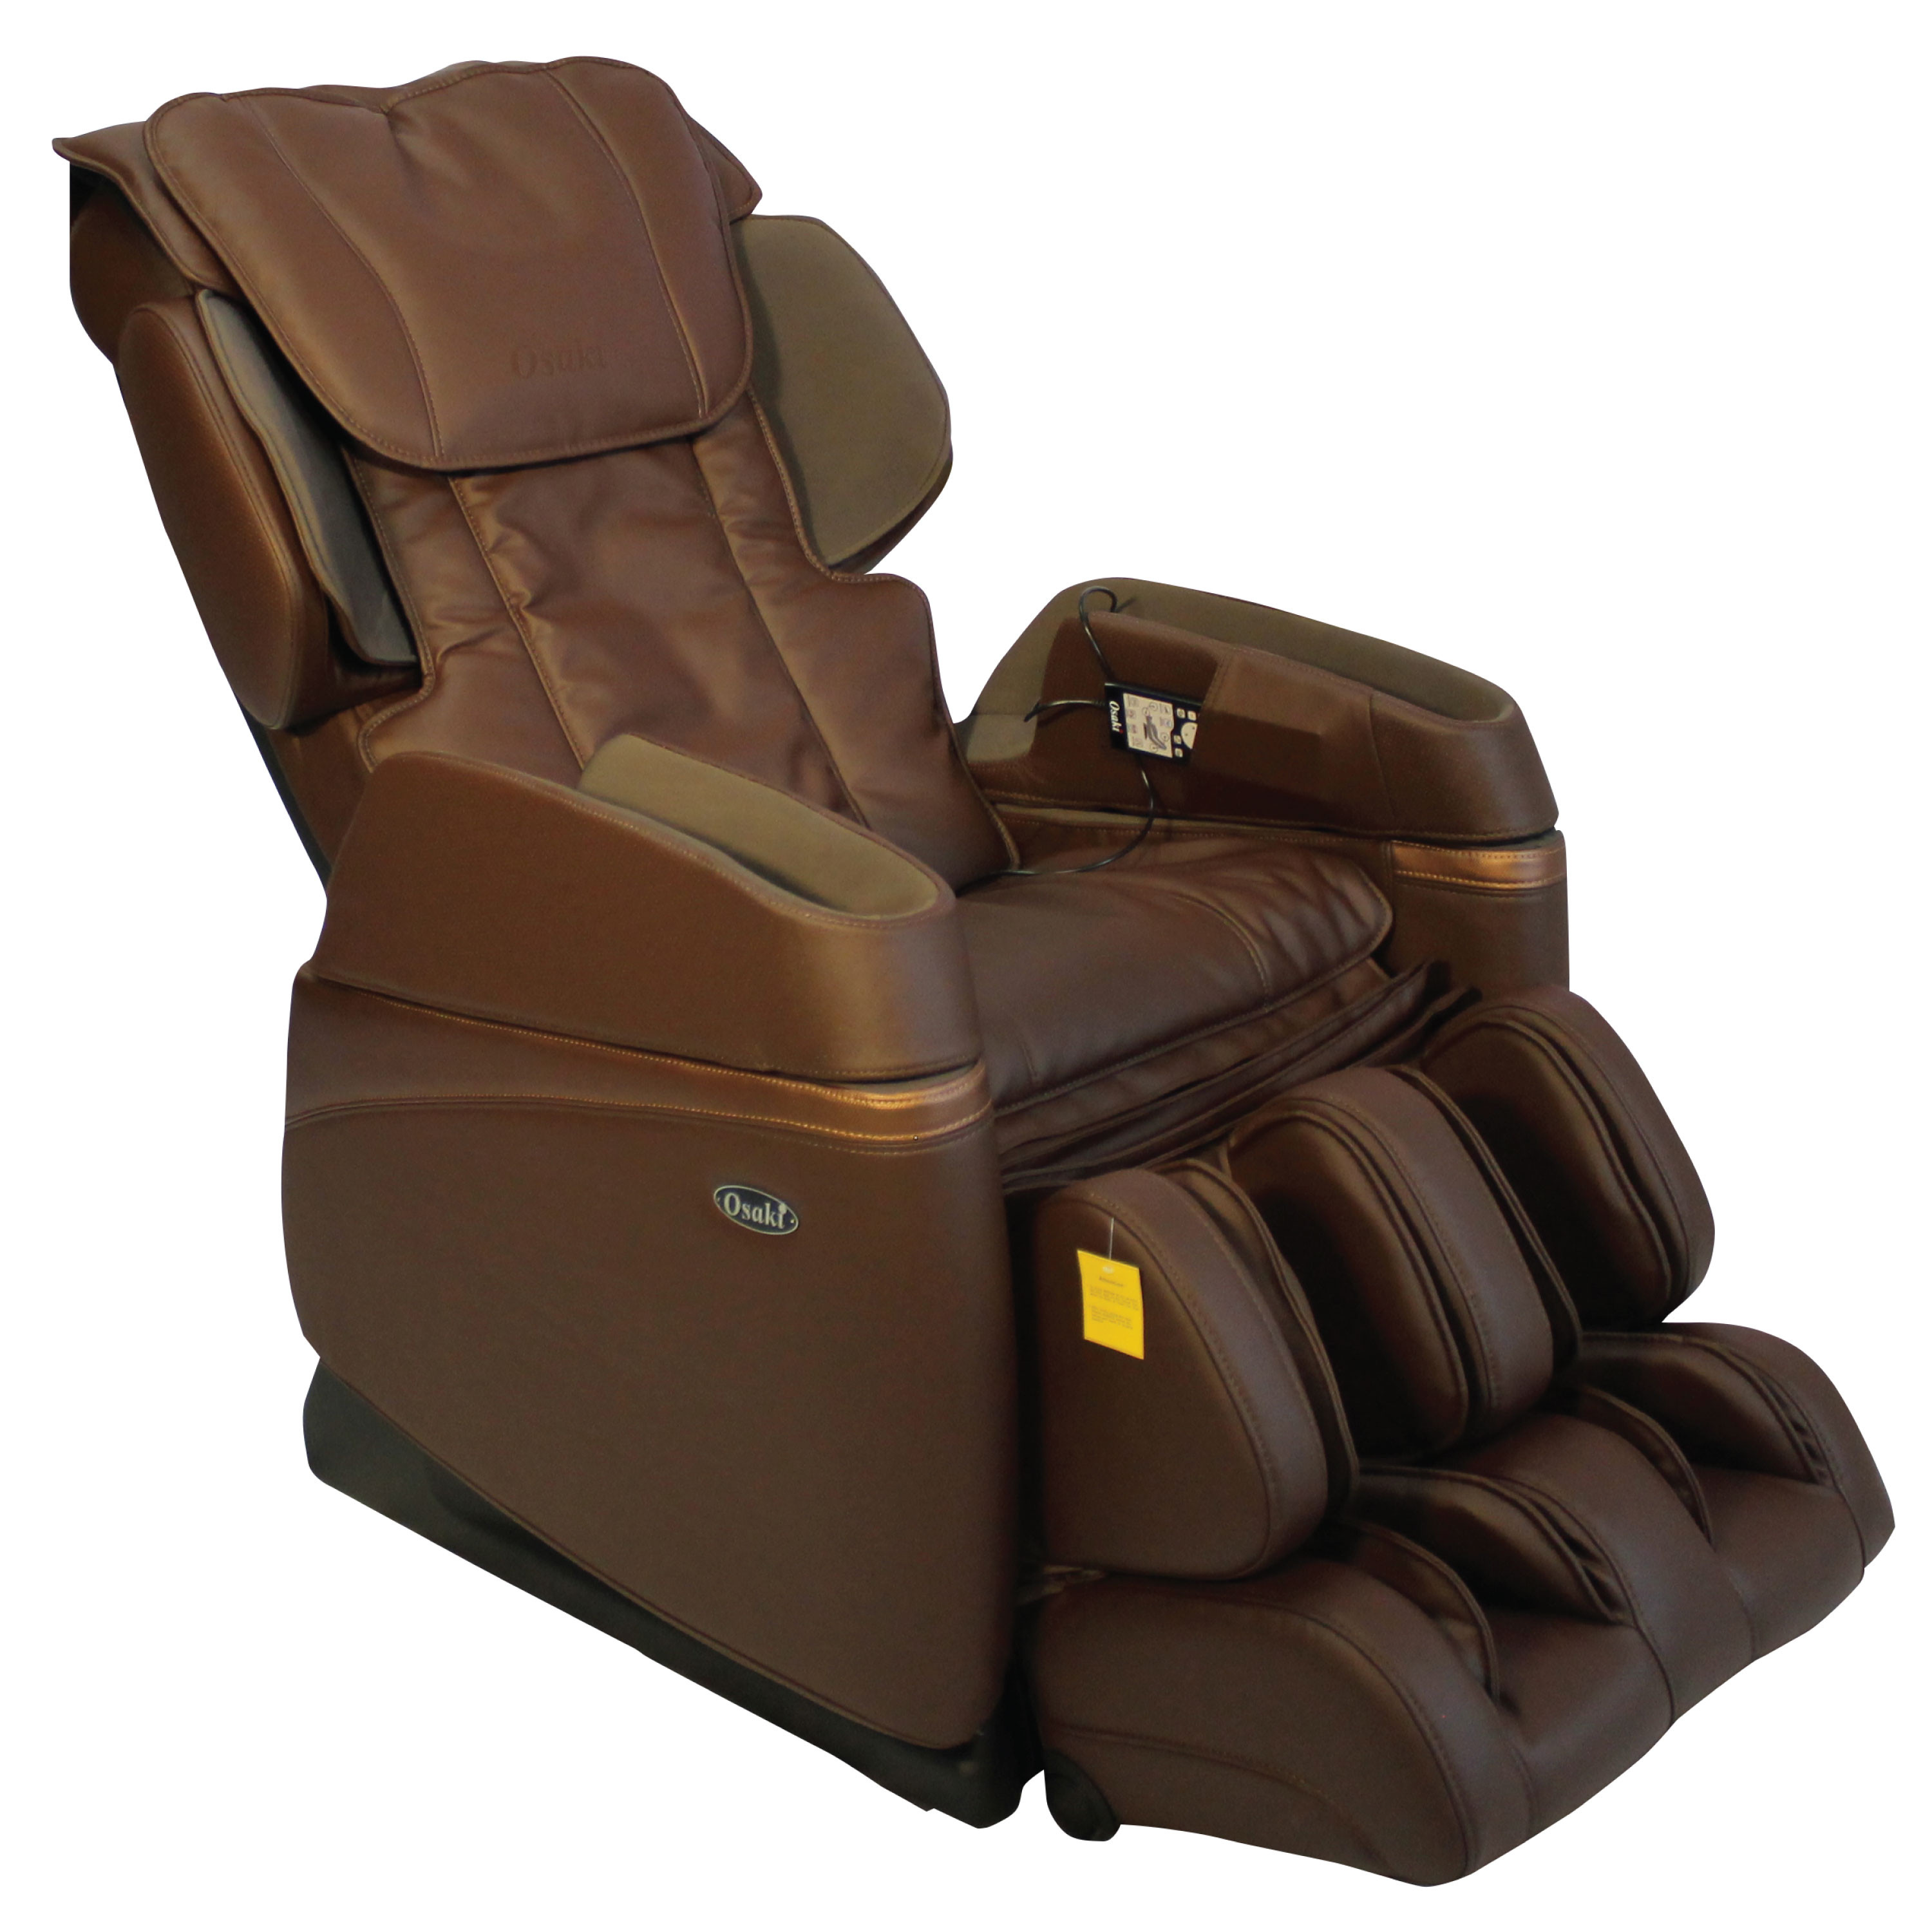 Osaki 3700 Massage Chair - Brown - Front Angle View